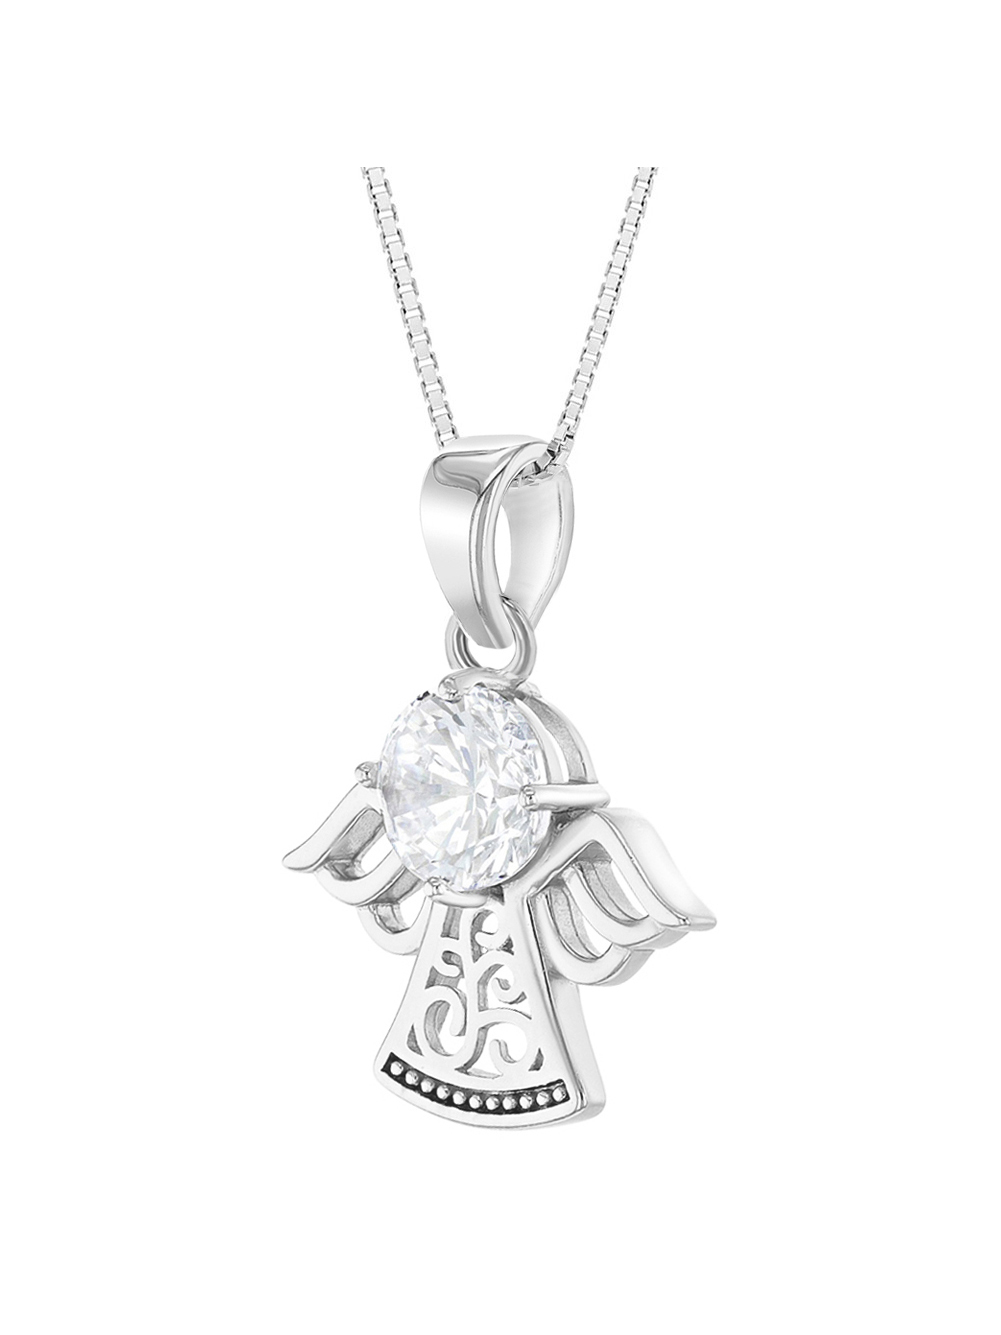 925 silver baptism set with engraving 2 pendant with children/'s chain kit The bed-girl the cross and a 40 cm snake chain